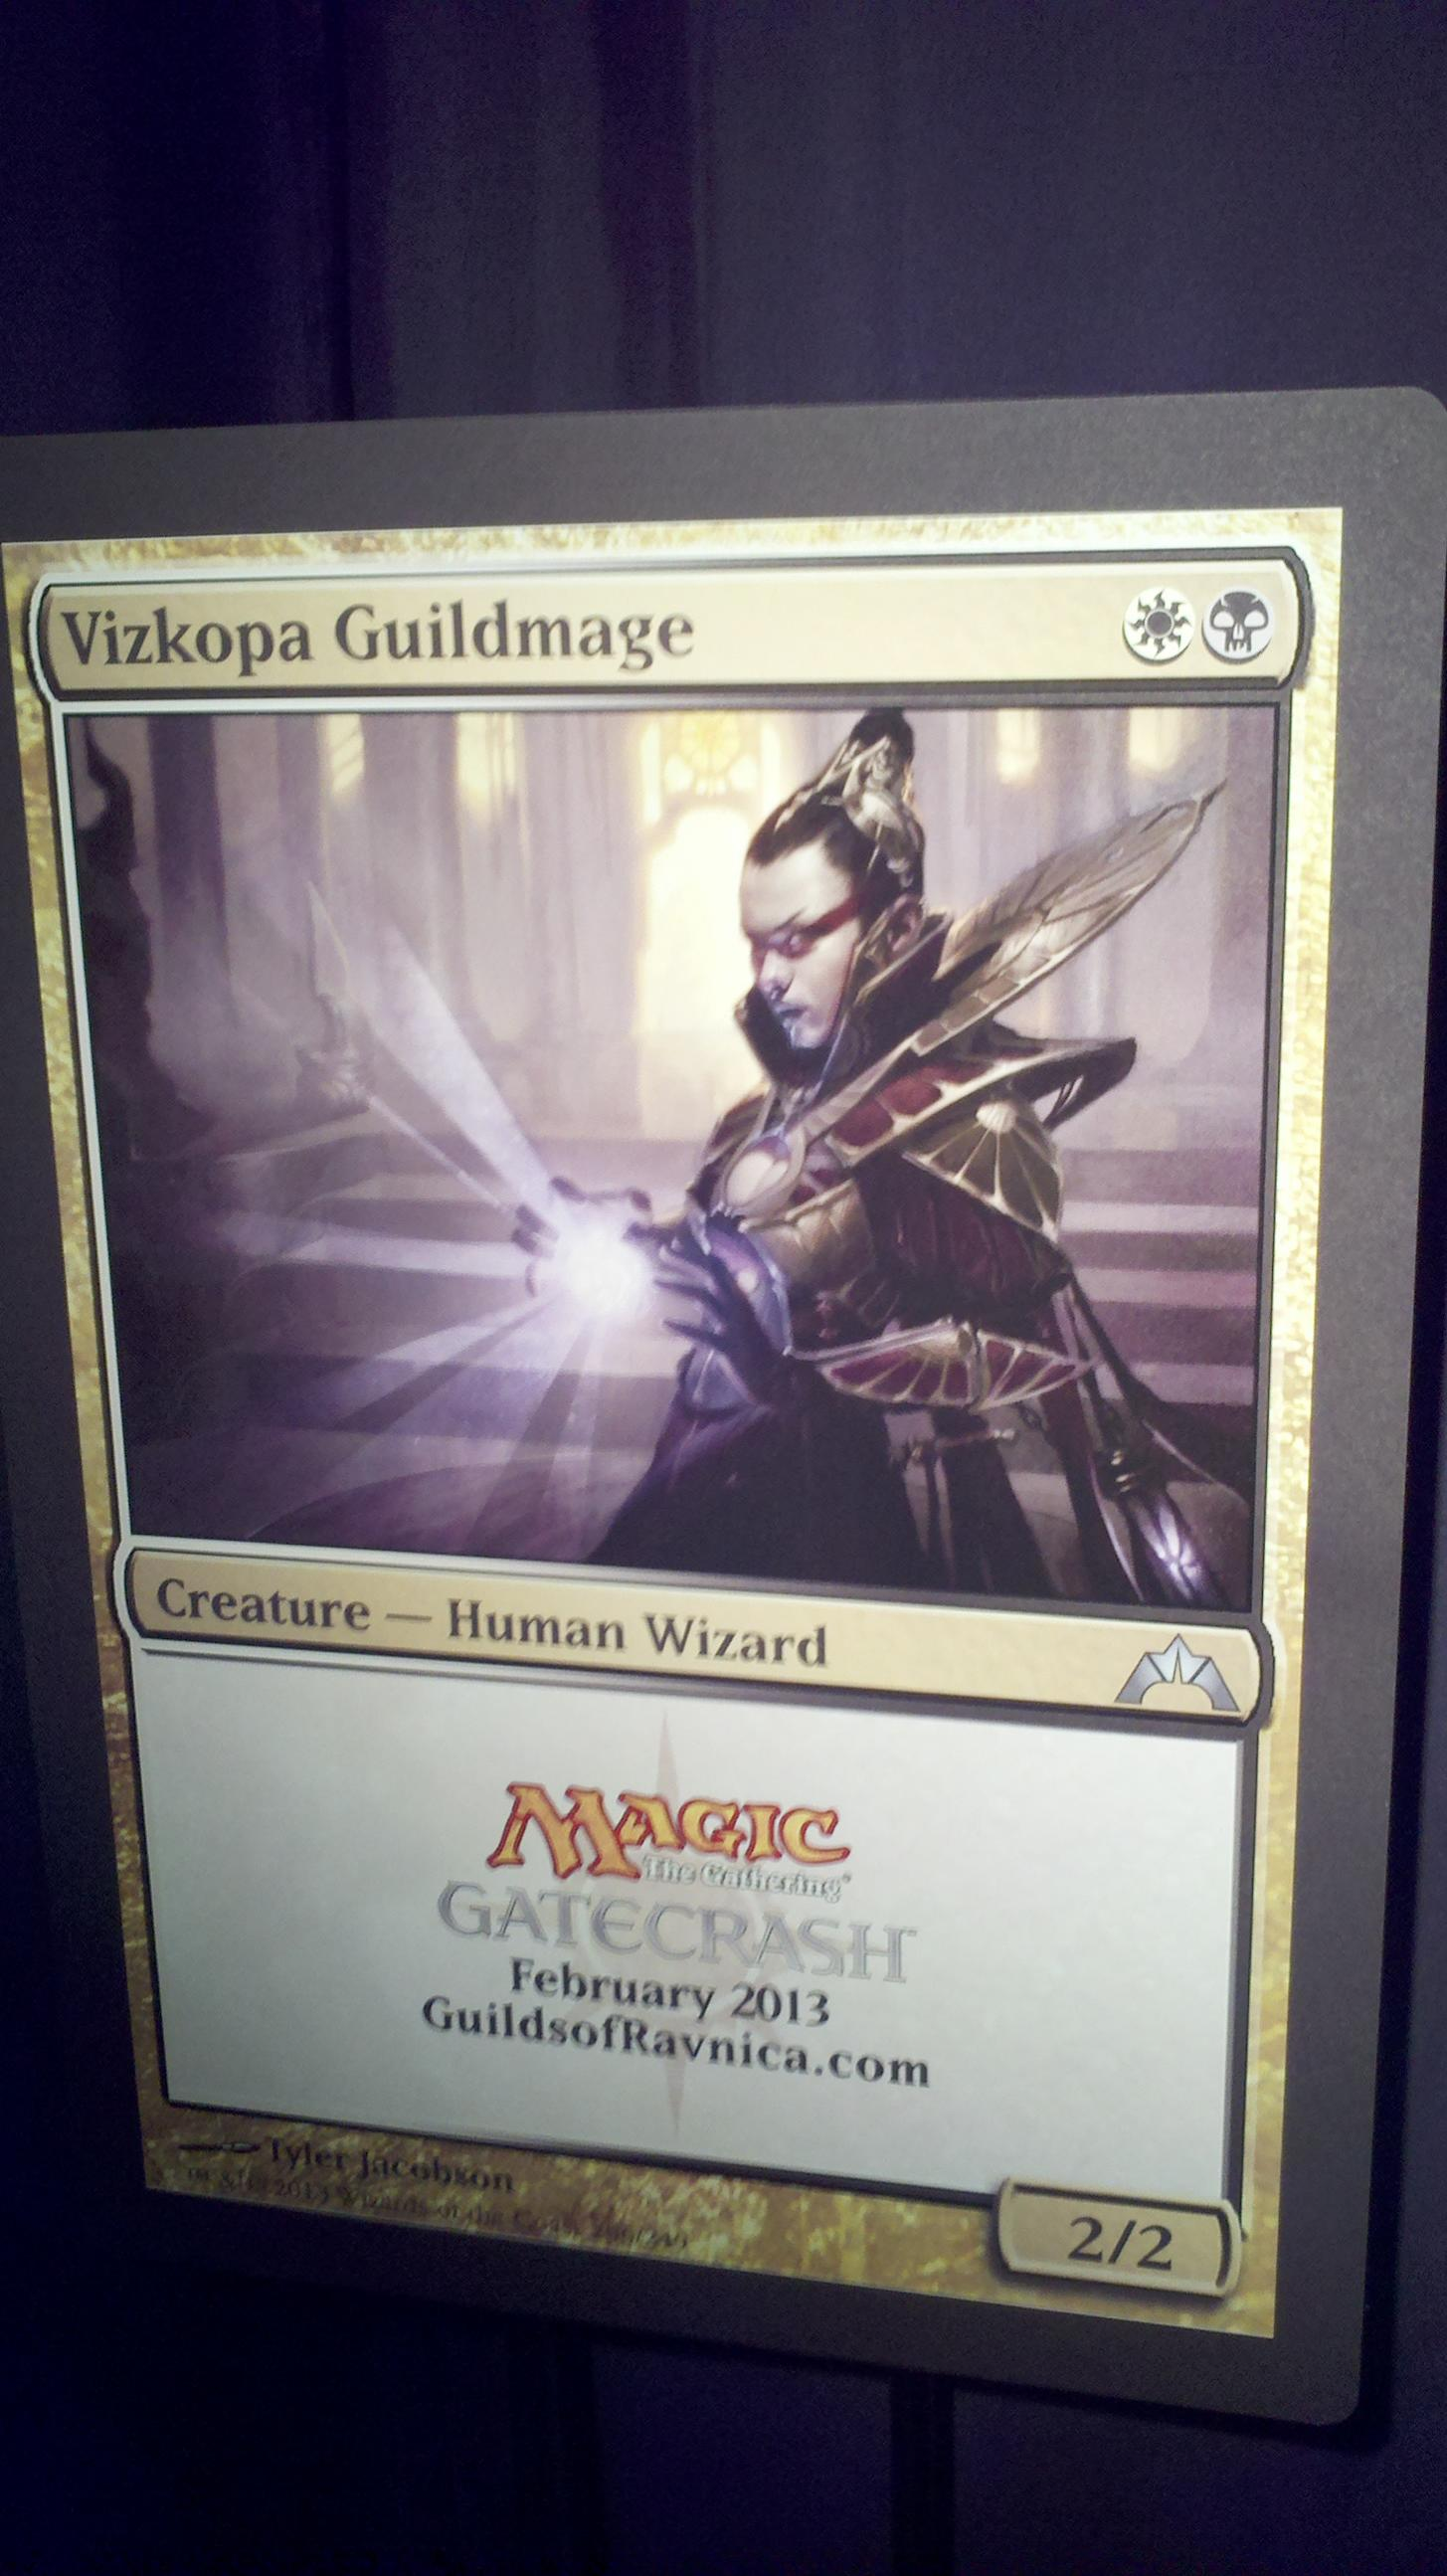 Vizkopa Guildmage